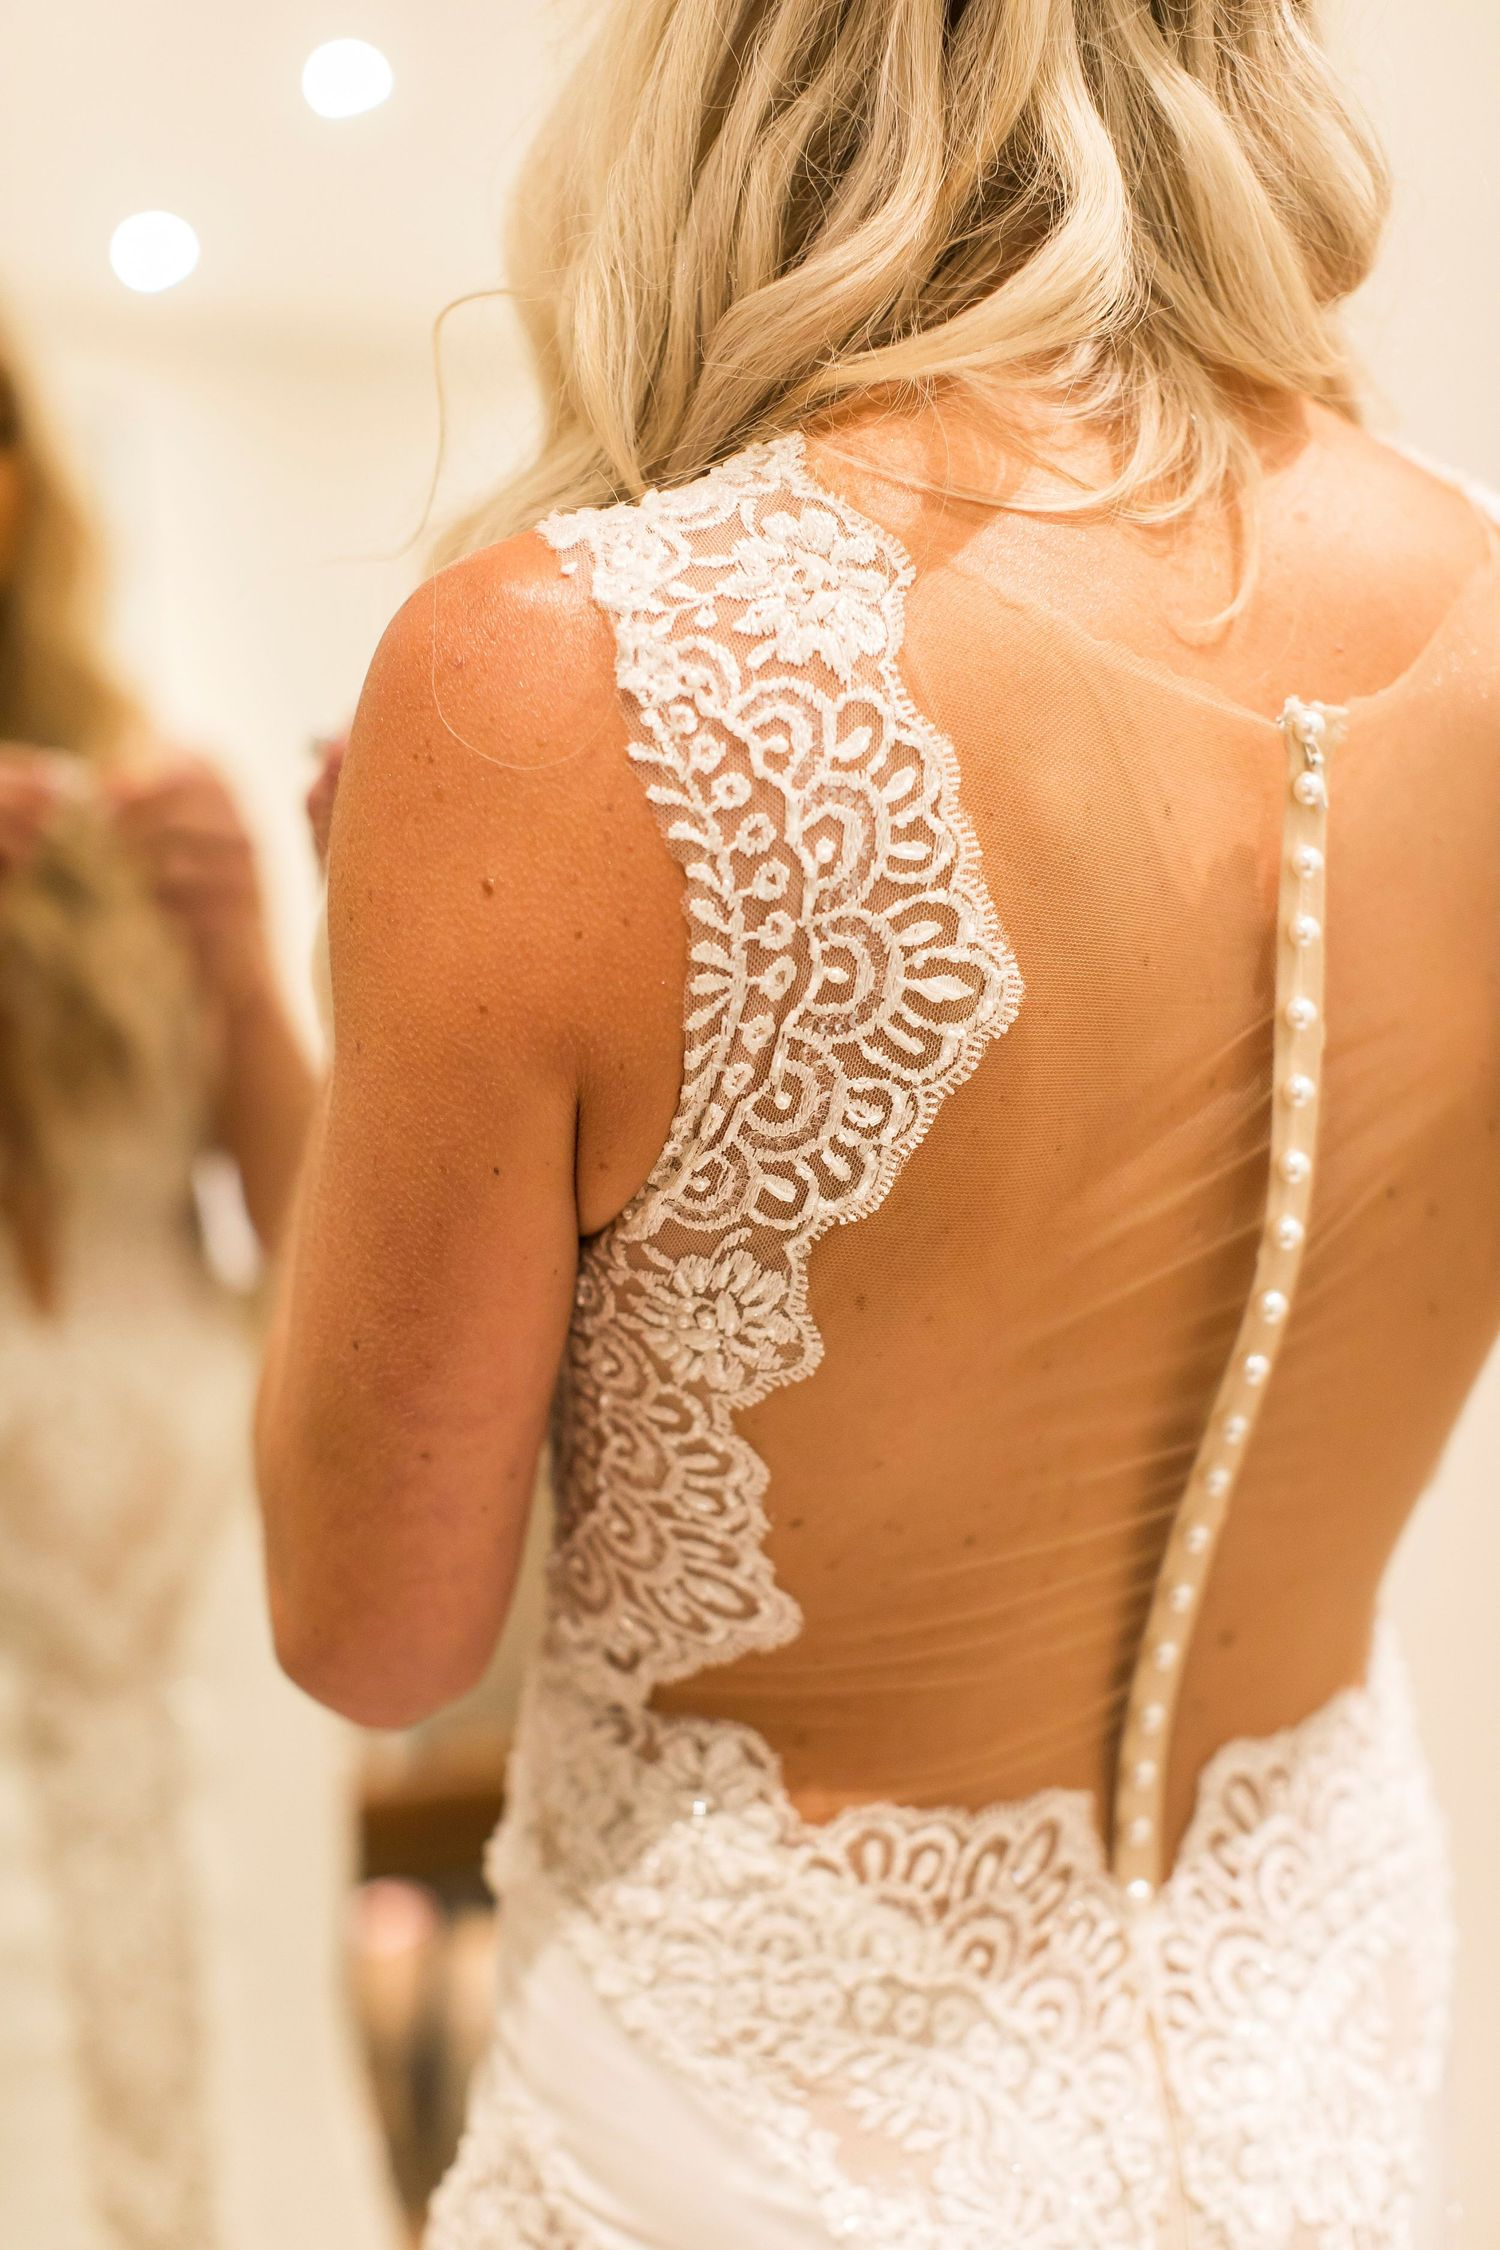 Alyssa Marie Photography Calamigos Ranch Wedding